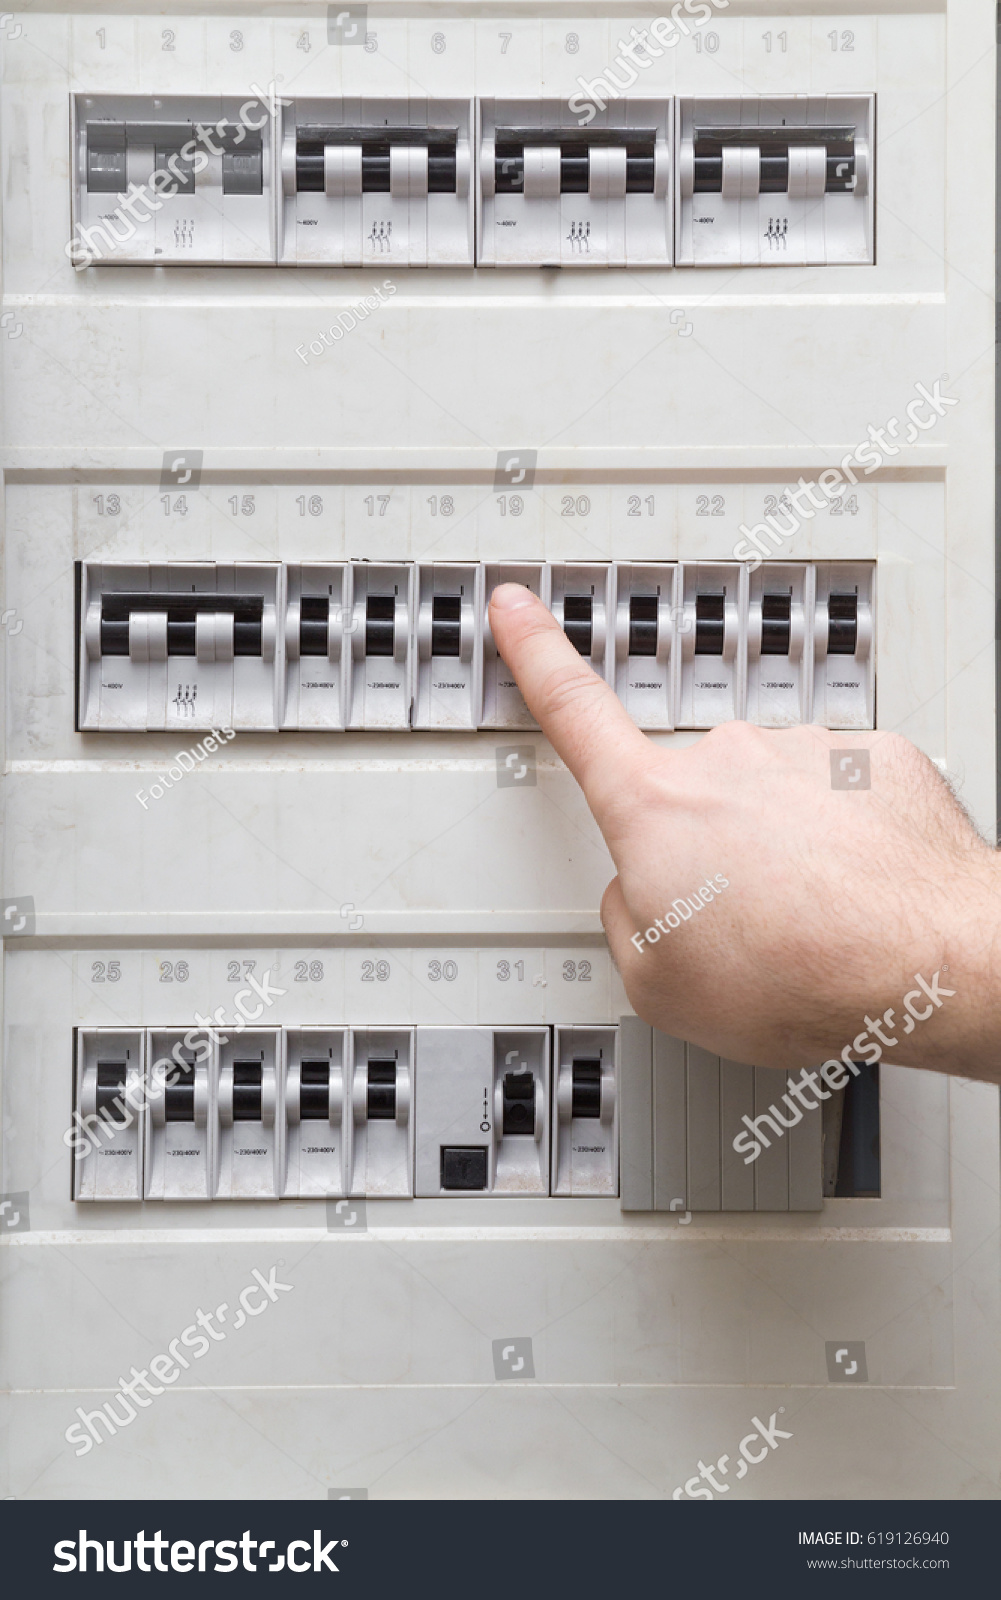 hight resolution of man s finger checking an electricity in the fuse box dangerous activity indoor